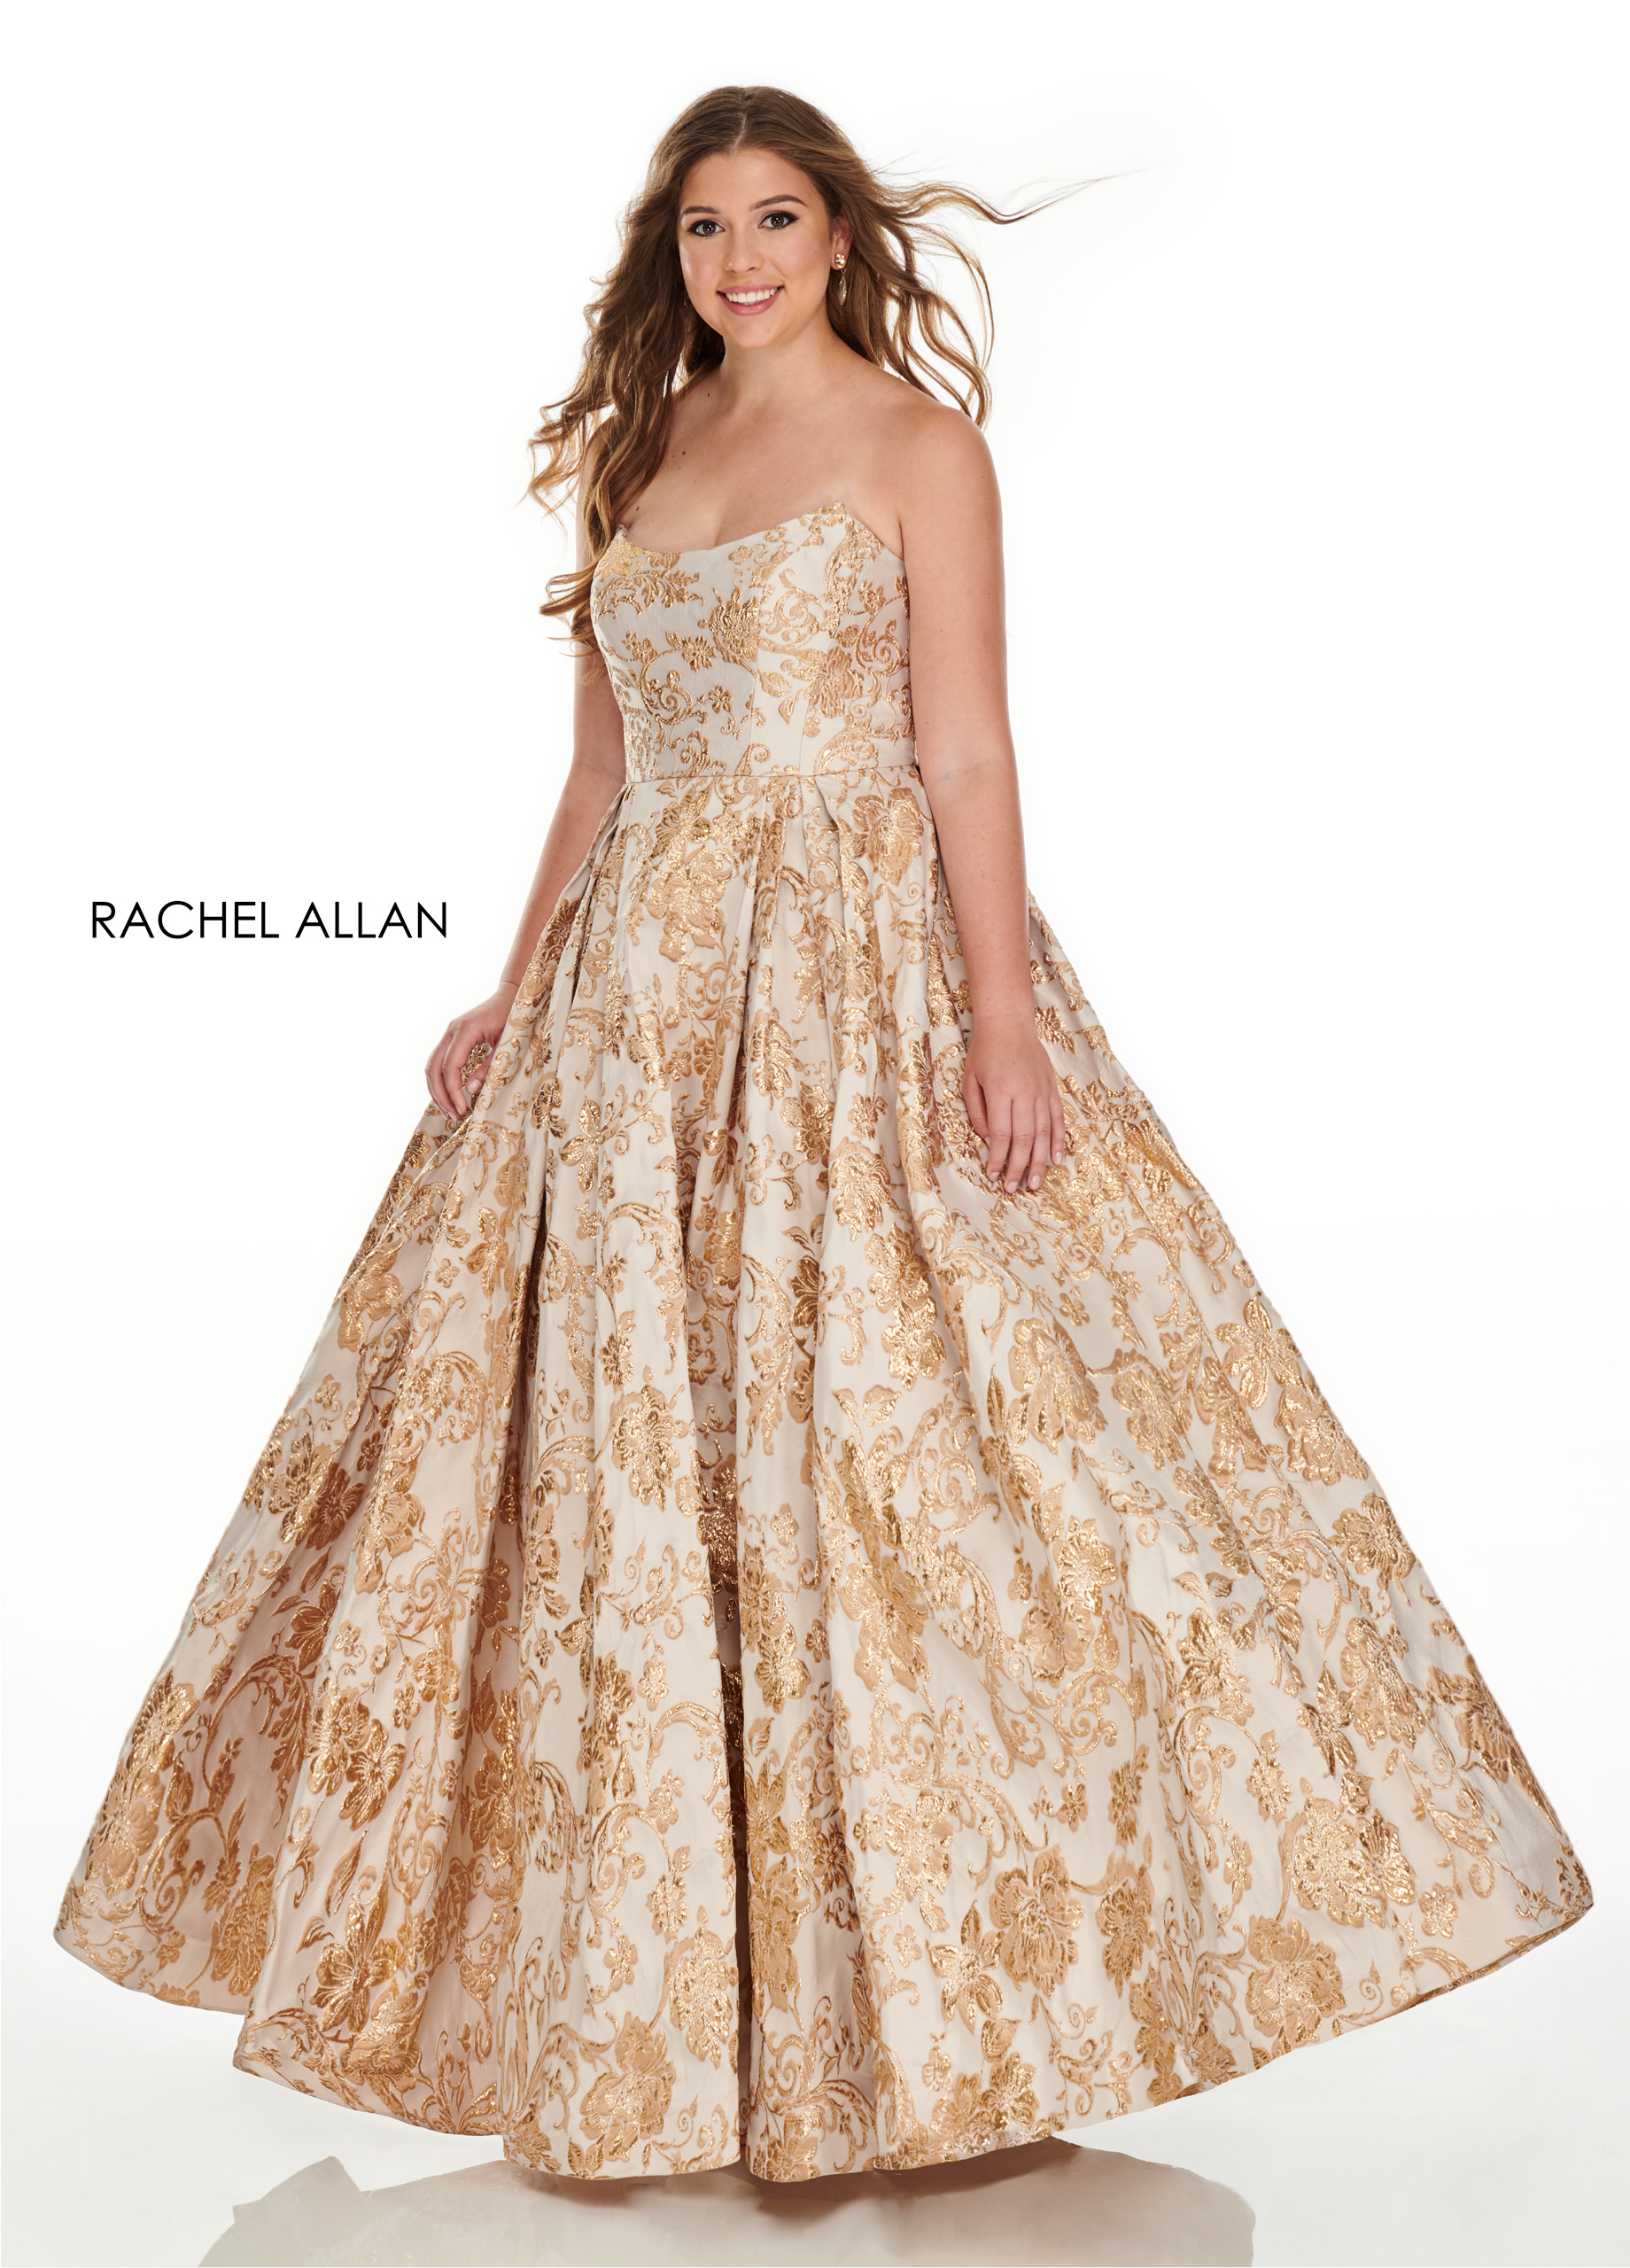 Strapless Ball Gowns Plus Size Dresses in Gold Color